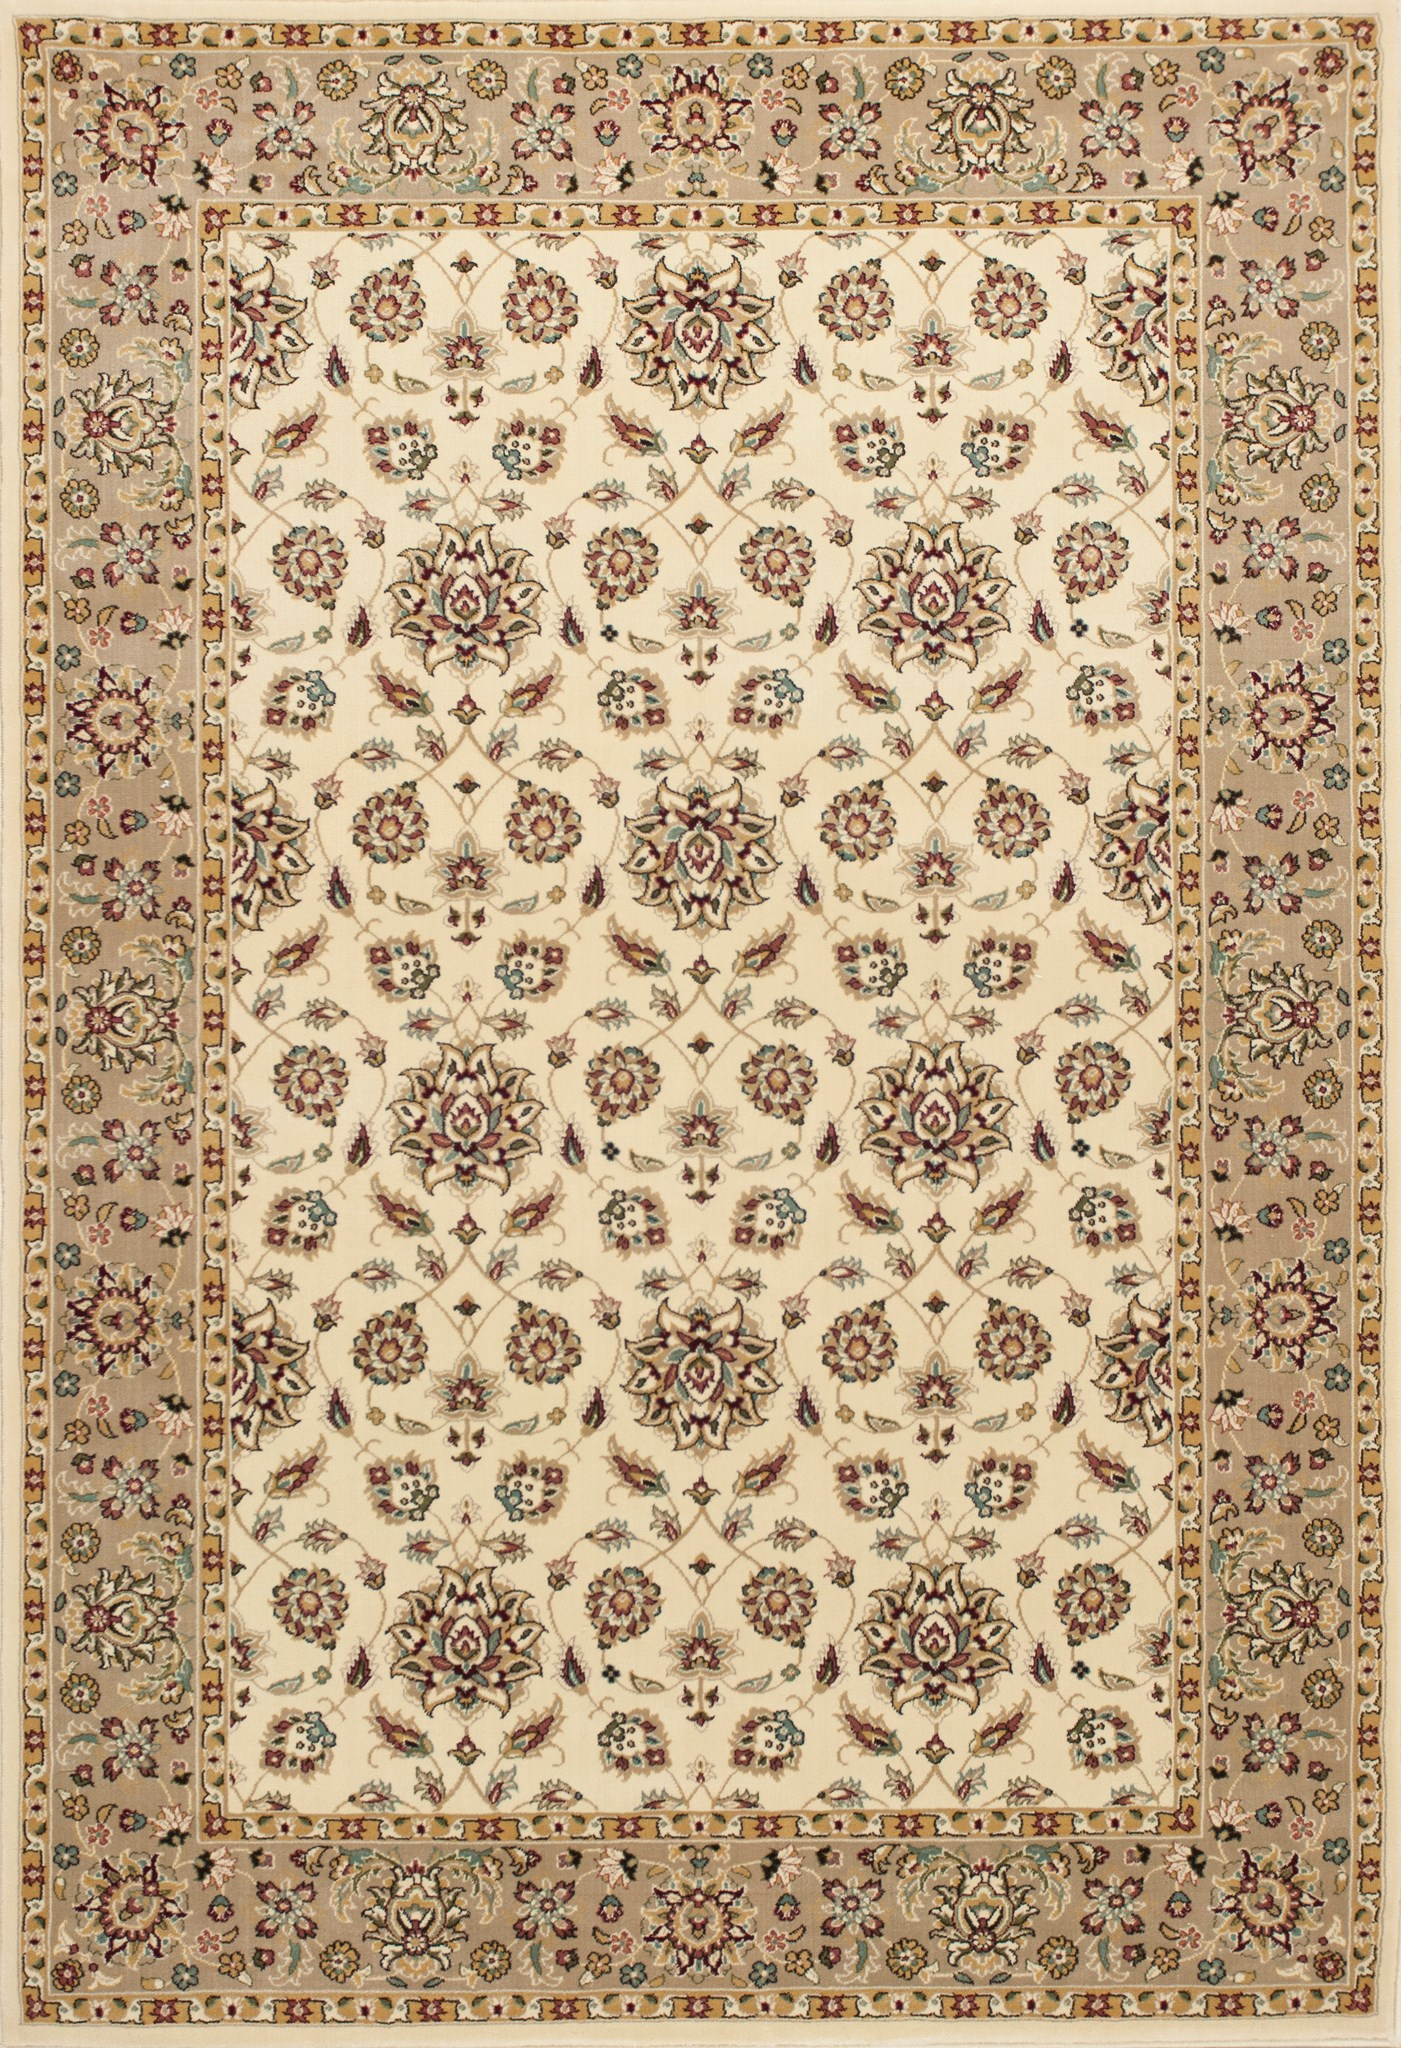 Kingston 6407 Ivory/Beige Mahal